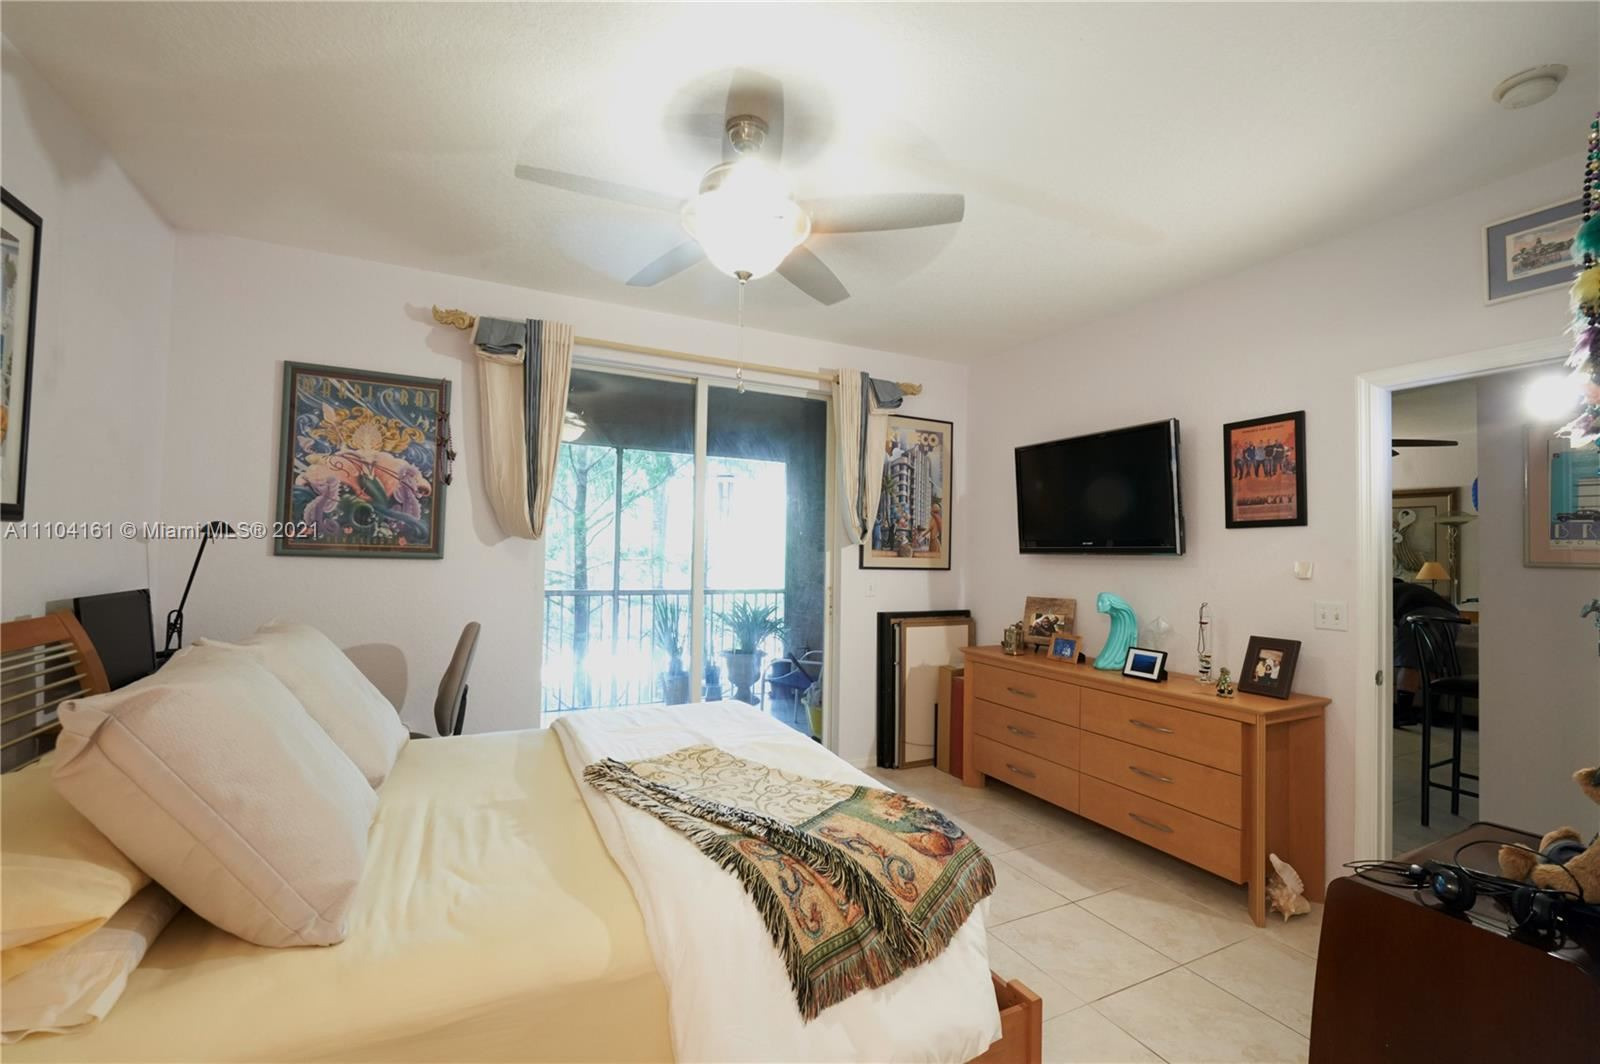 Photo of 6638 W Sample Rd #6638, Coral Springs, FL 33067 (MLS # A11104161)